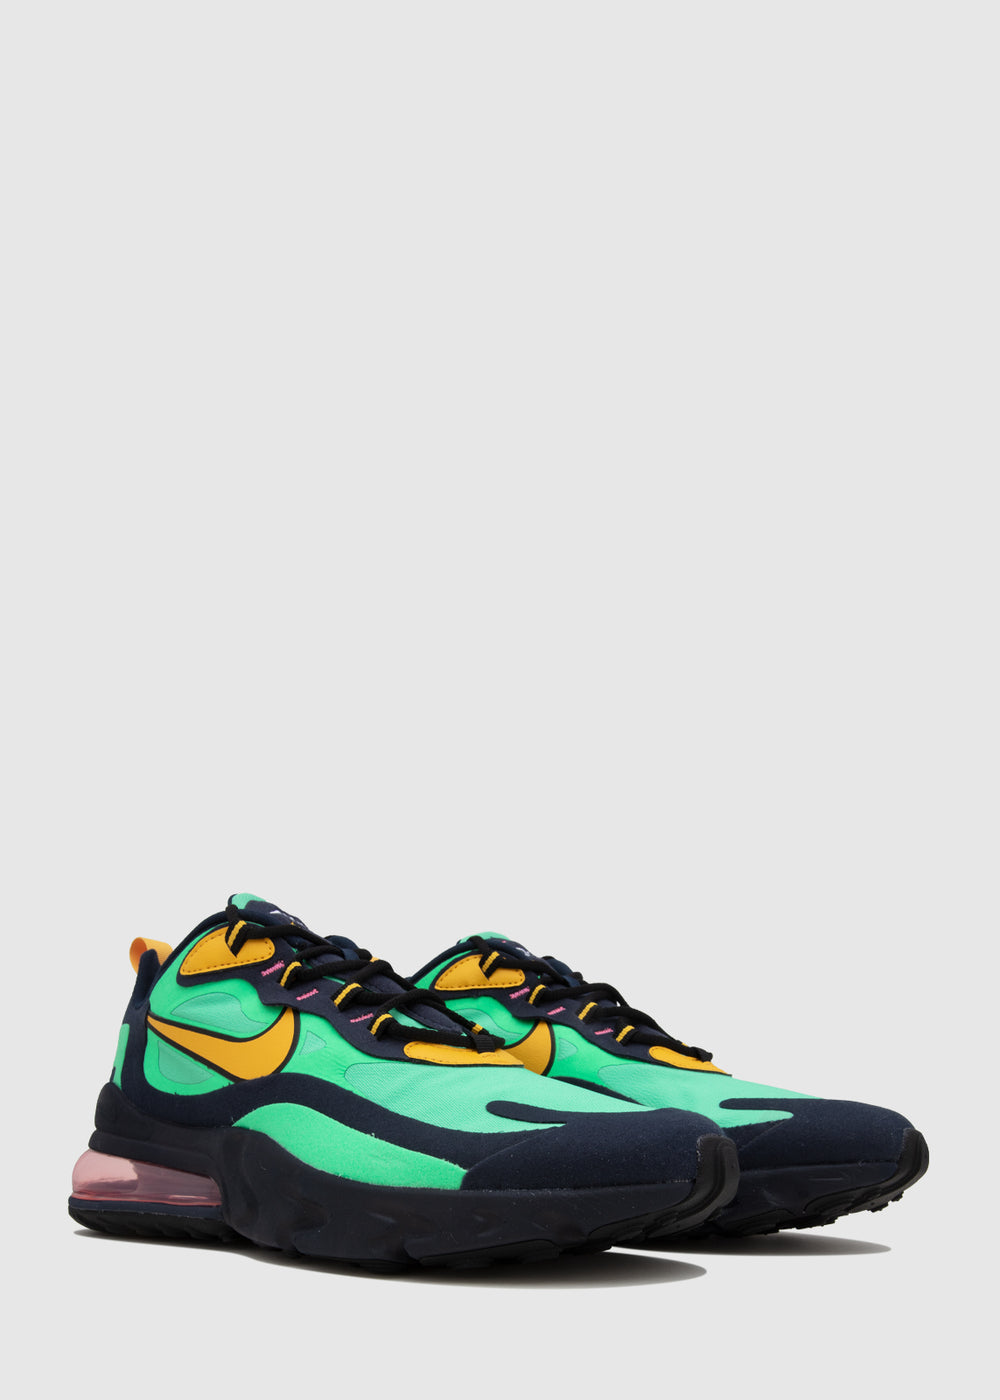 nike-air-max-270-react-pop-art-green-2